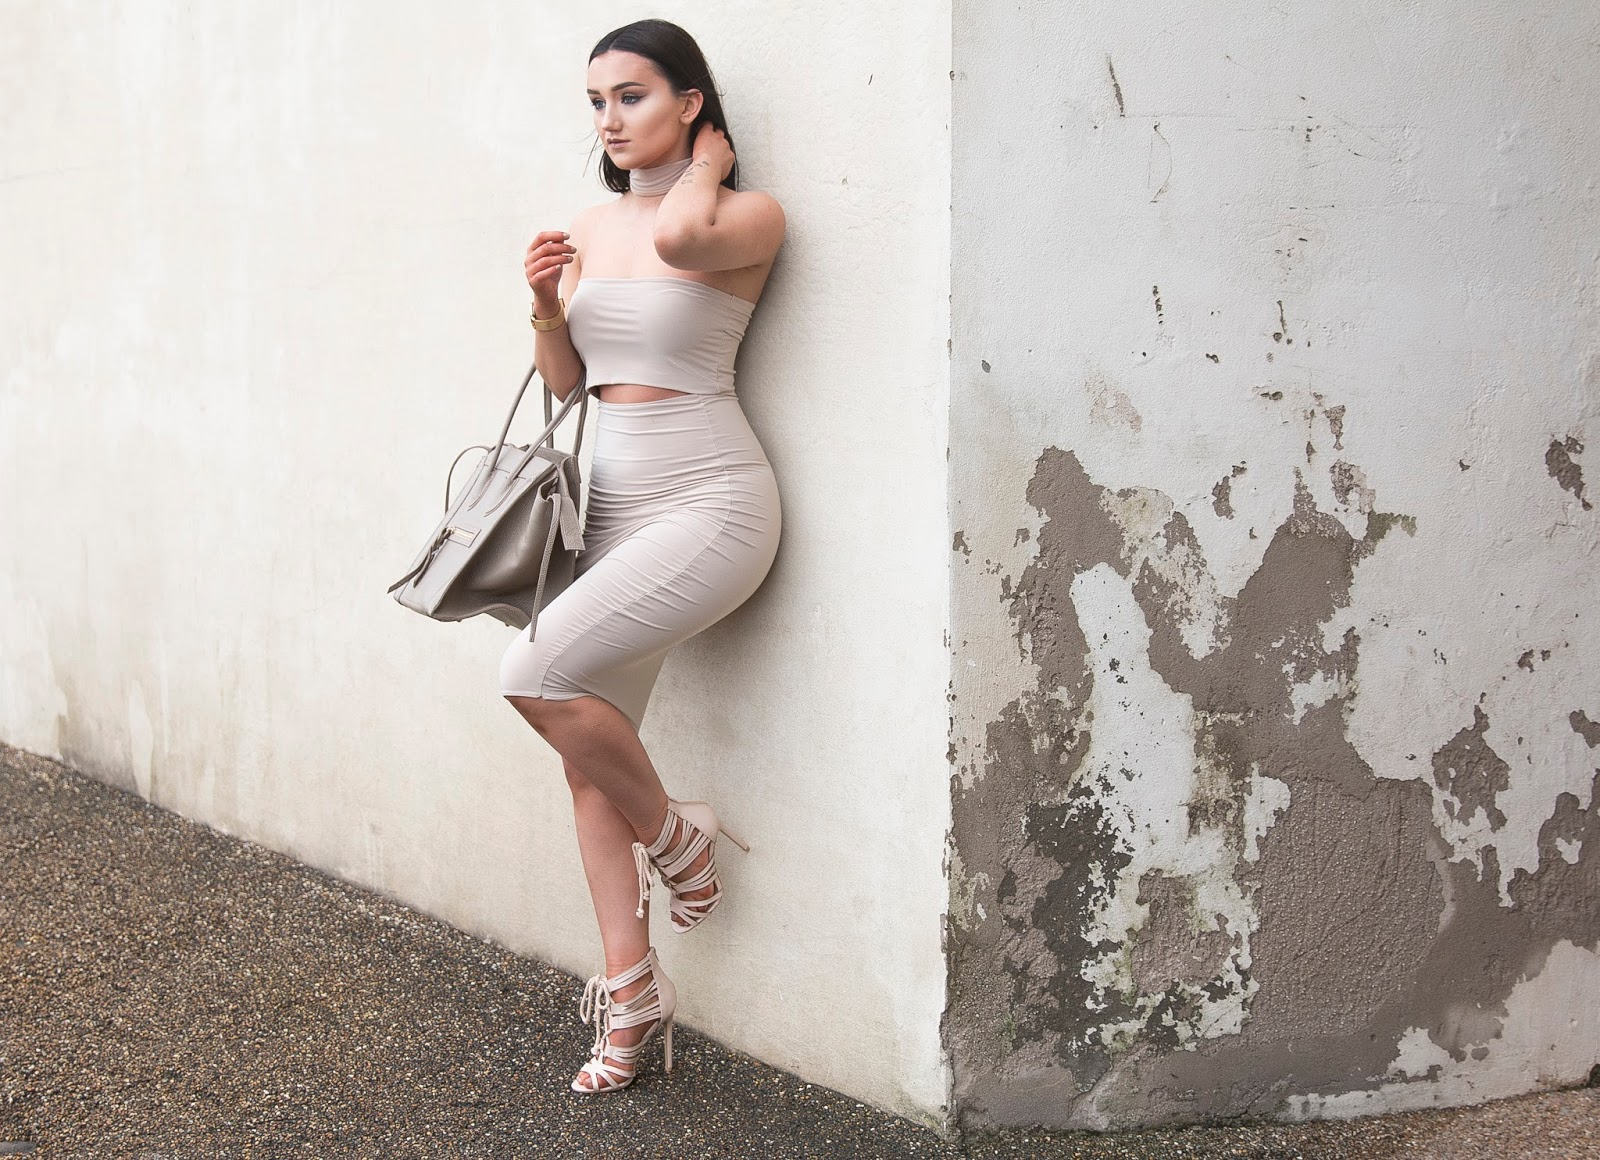 Nude Intrusion | Daily Outfit by Kayley Anne Jones